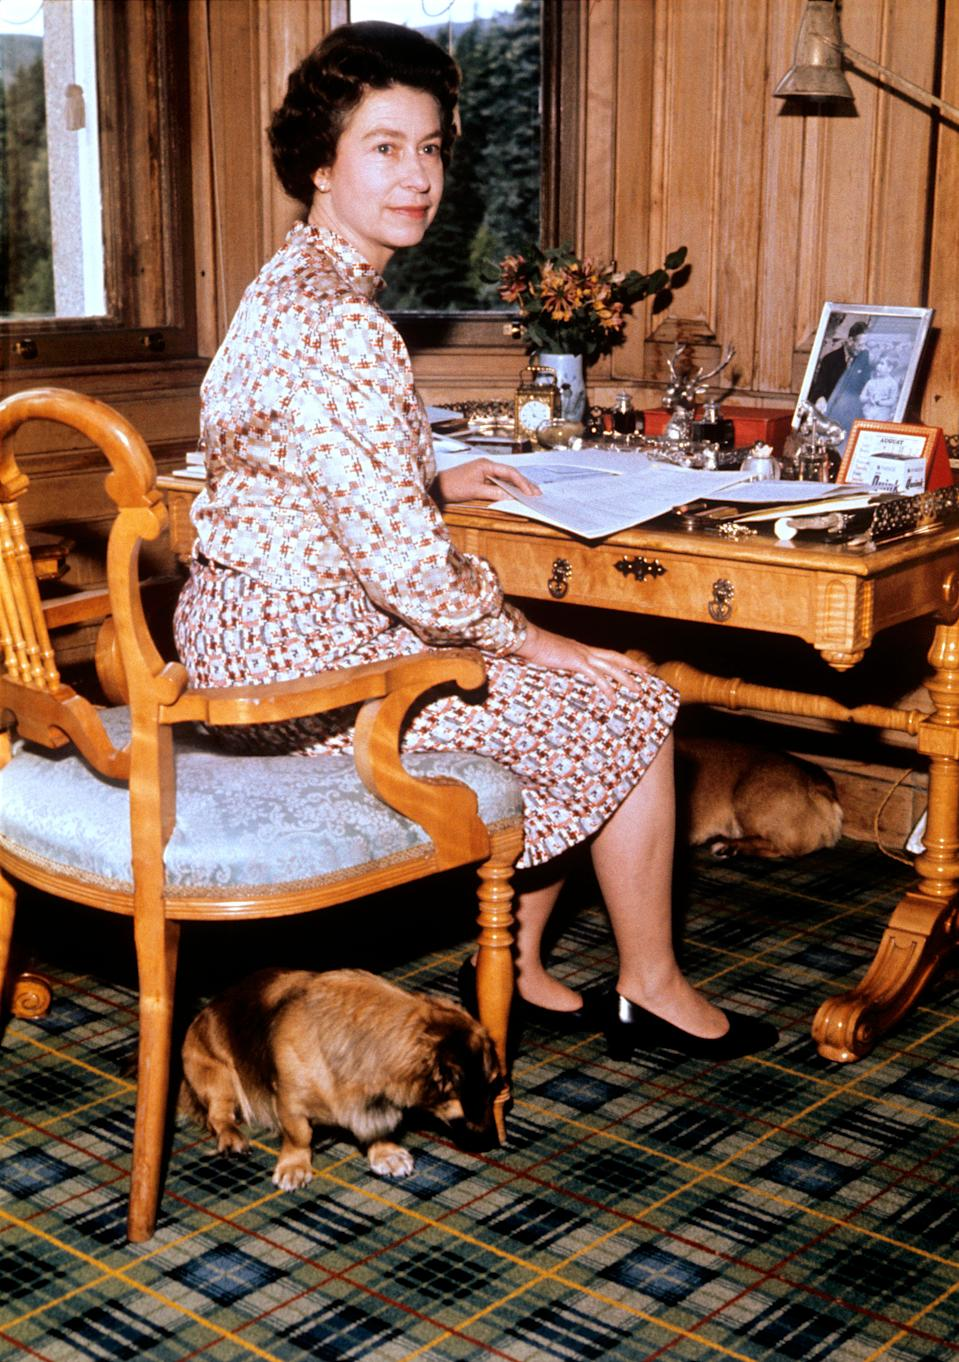 The Queen in her study at Balmoral.